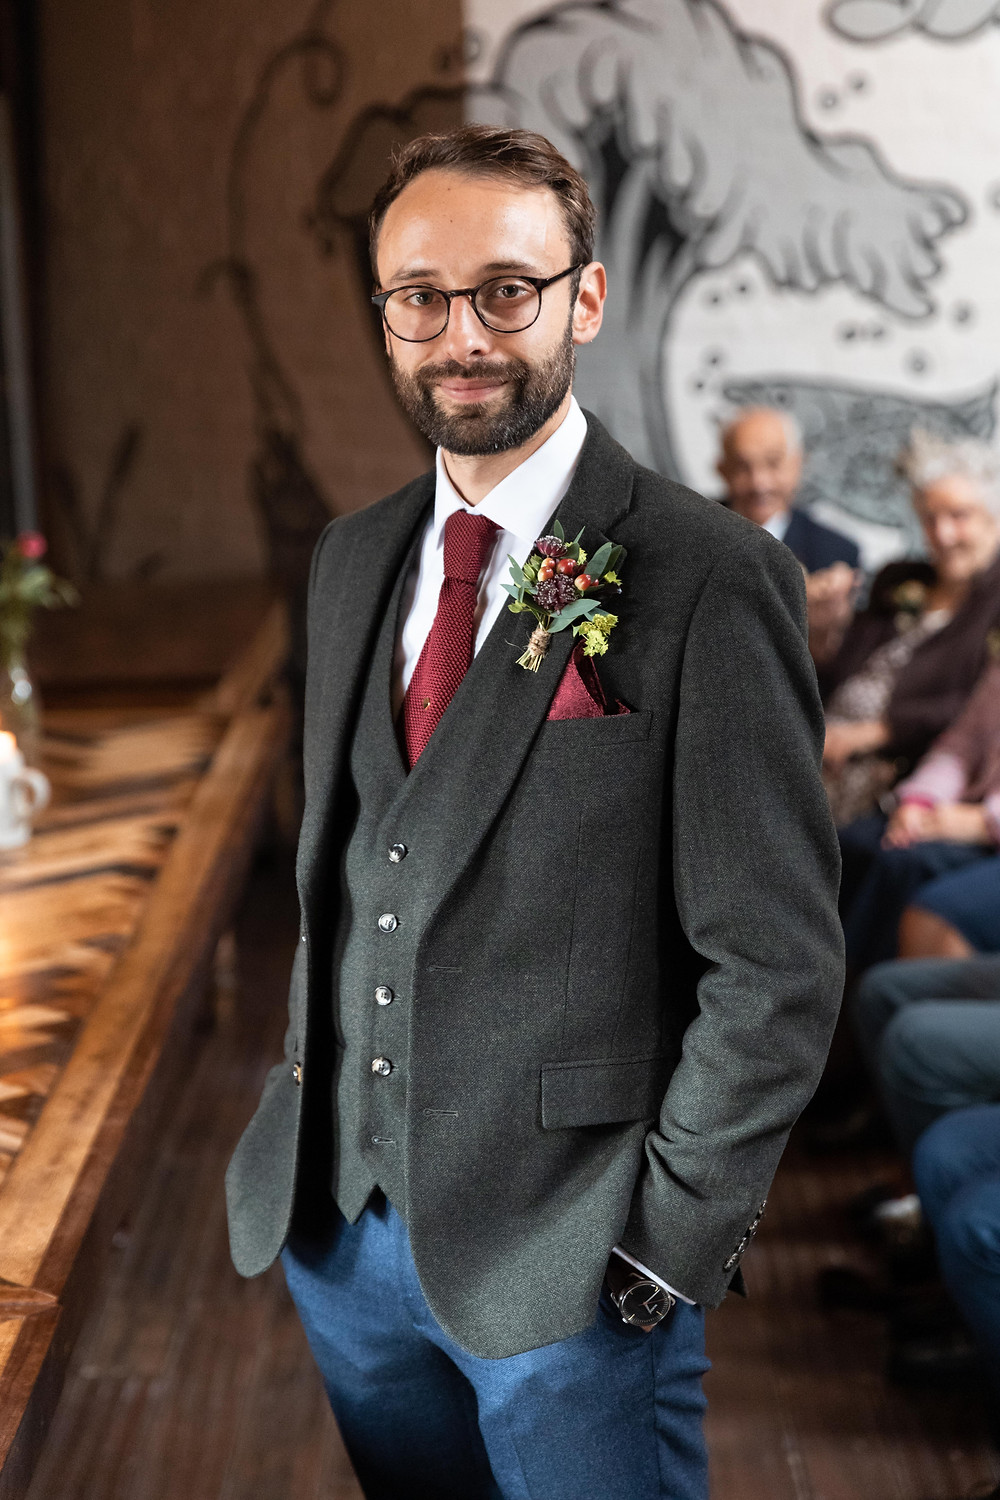 Wedding portrait of the groom